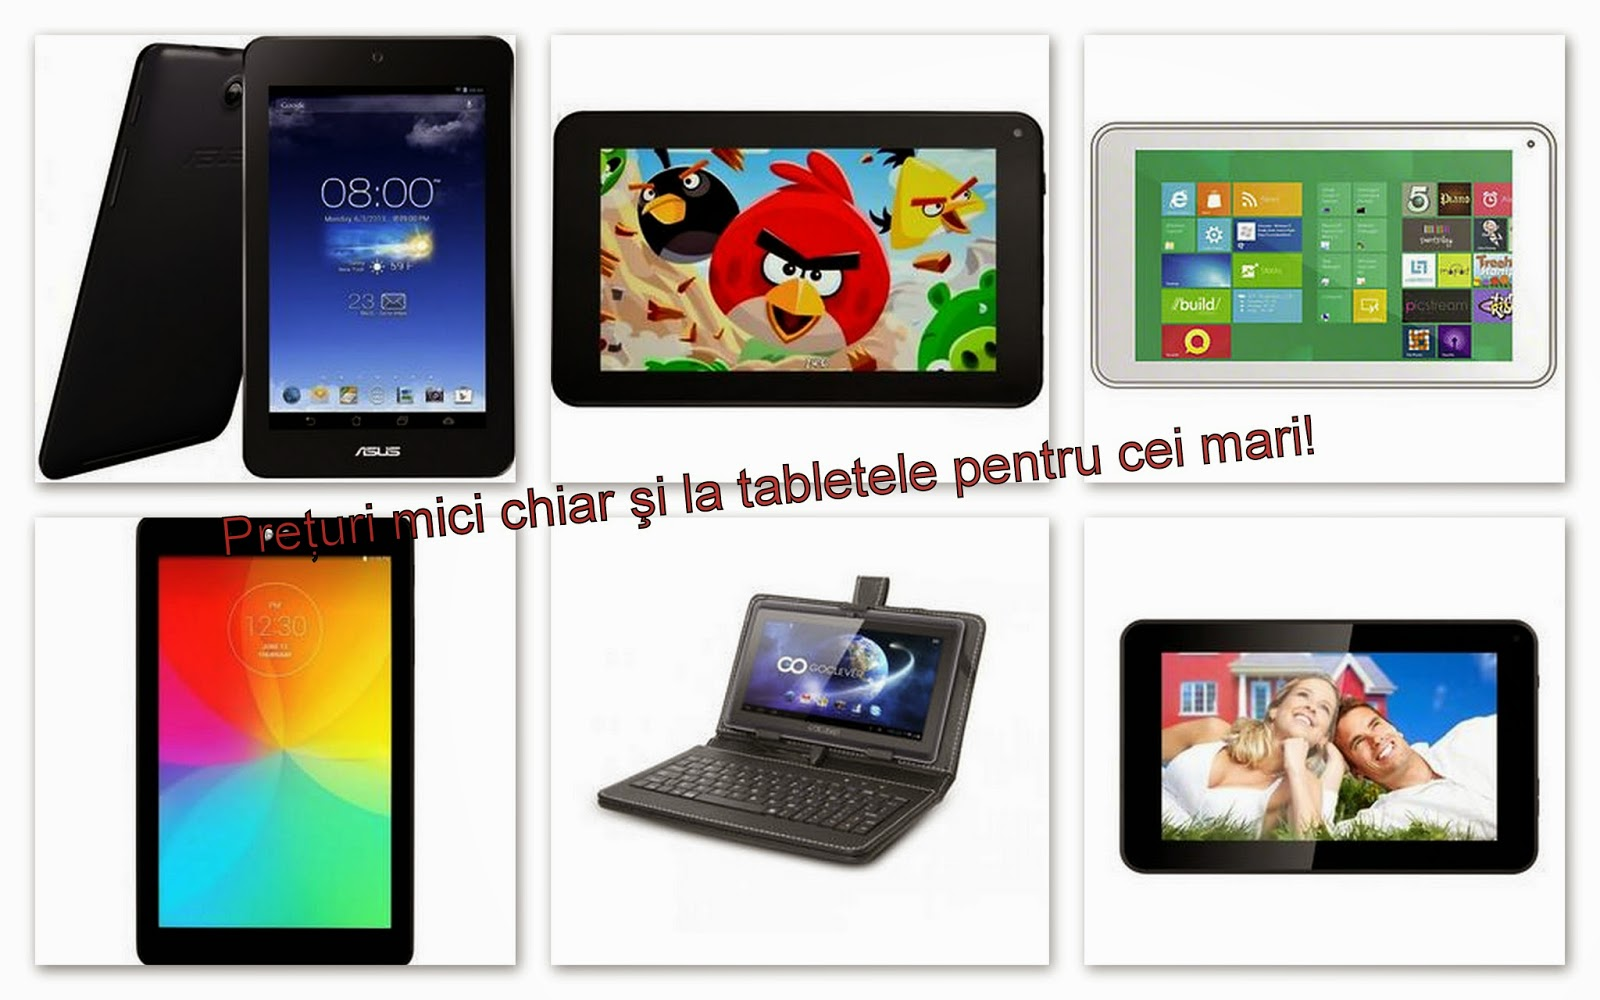 http://www.itgalaxy.ro/tablete/